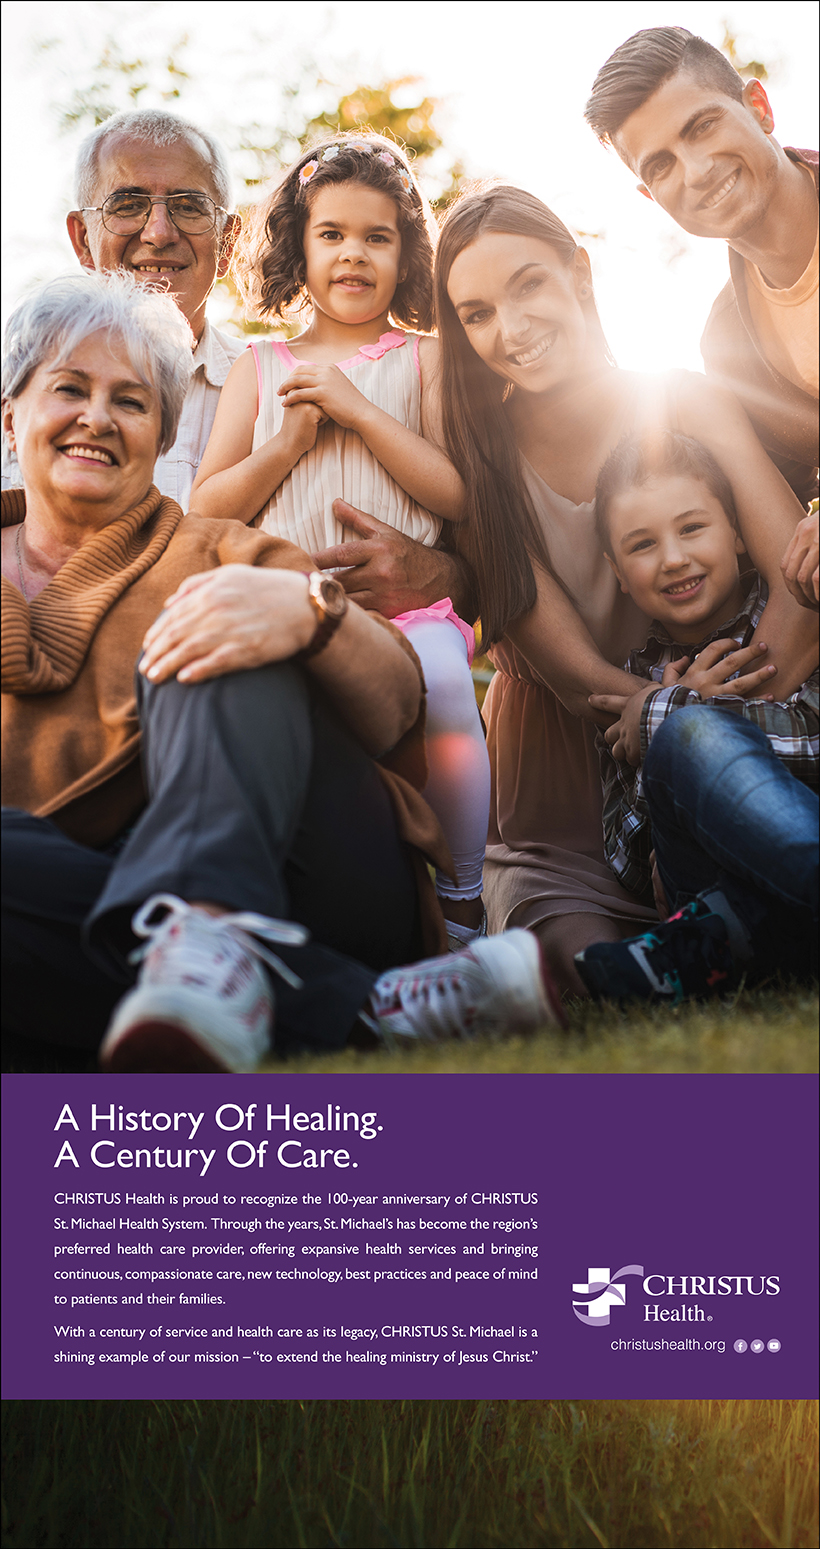 A History Of Healing - Full Page-72.jpg